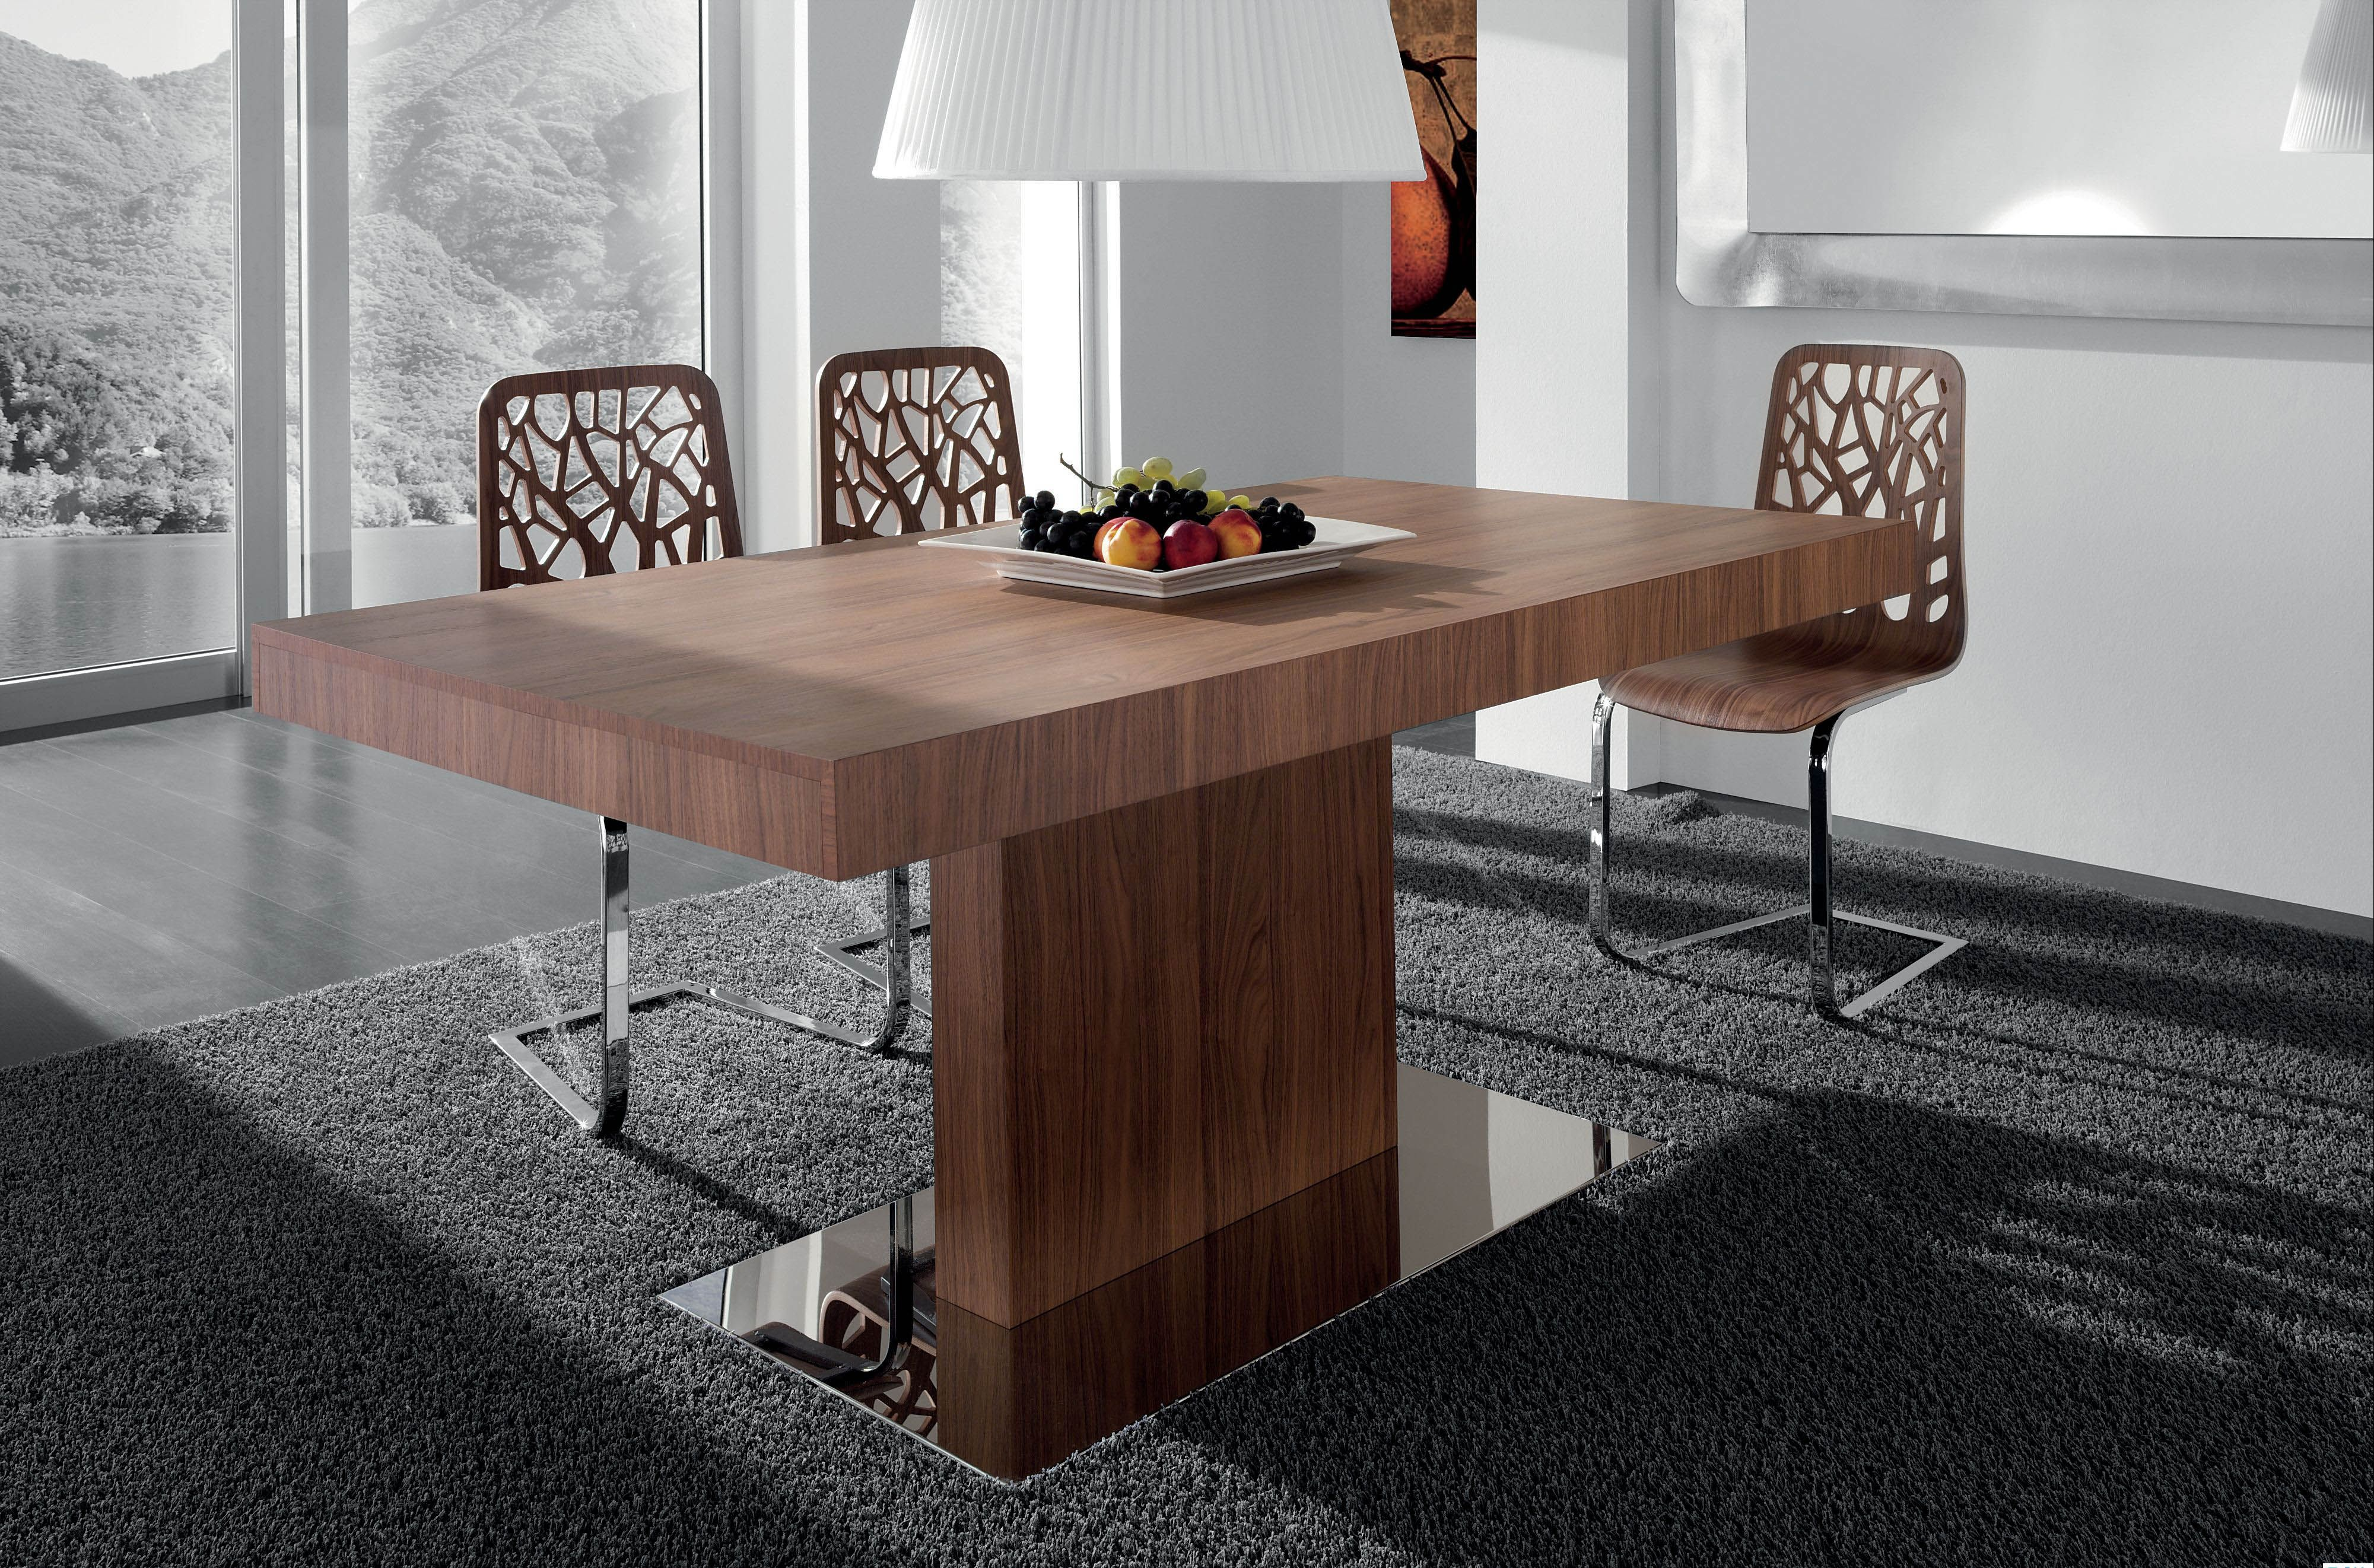 Modern Extendable Dining Table In Oak Walnut Veneer Finish With Chairs Set